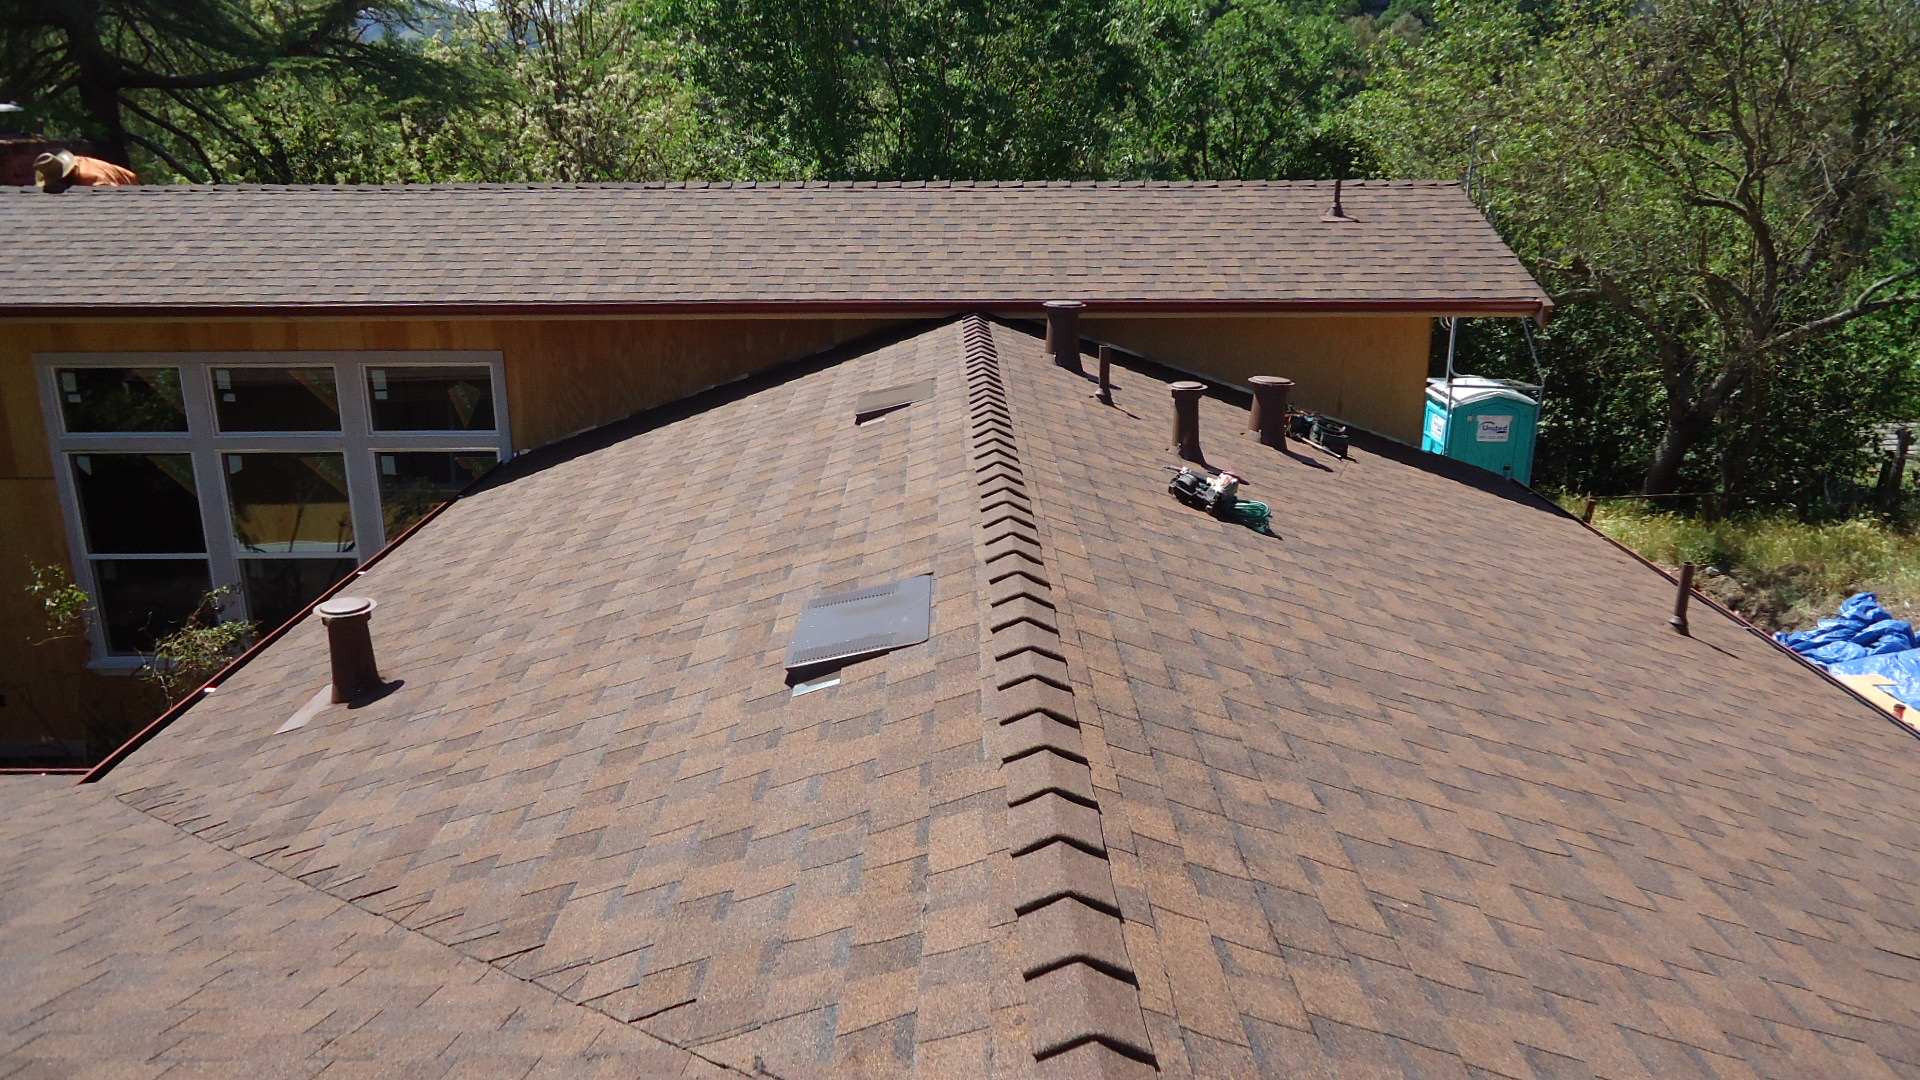 Fire Damaged Roof Repair In Alamo Ca Pacific Coast Roofing Service within proportions 1920 X 1080